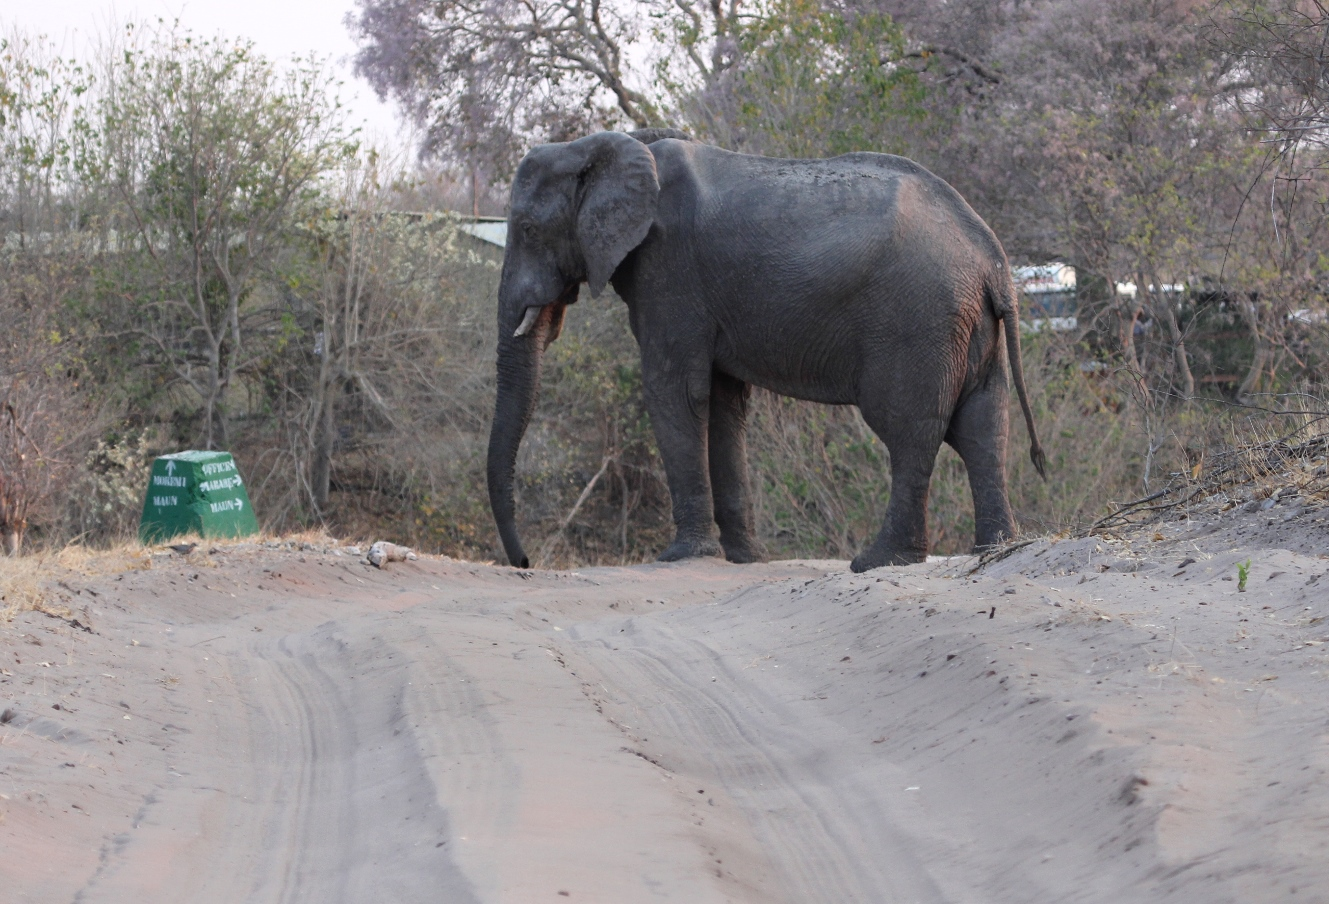 Cars, machinery, and other low-frequency human noise may impede elephant seismic communication.